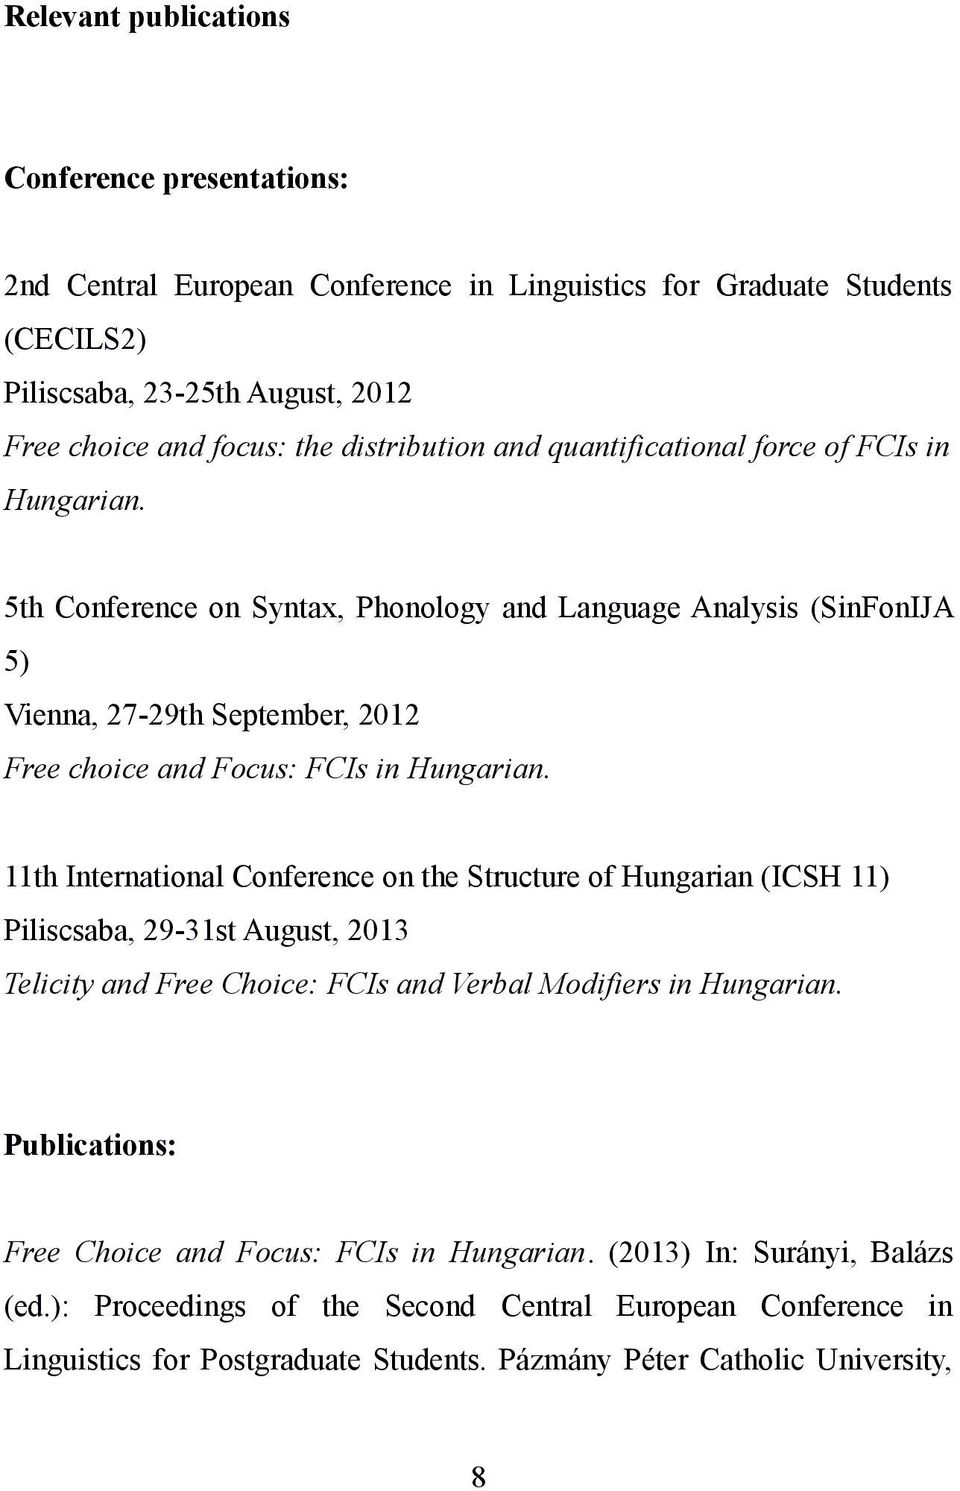 5th Conference on Syntax, Phonology and Language Analysis (SinFonIJA 5) Vienna, 27-29th September, 2012 Free choice and Focus: FCIs in Hungarian.